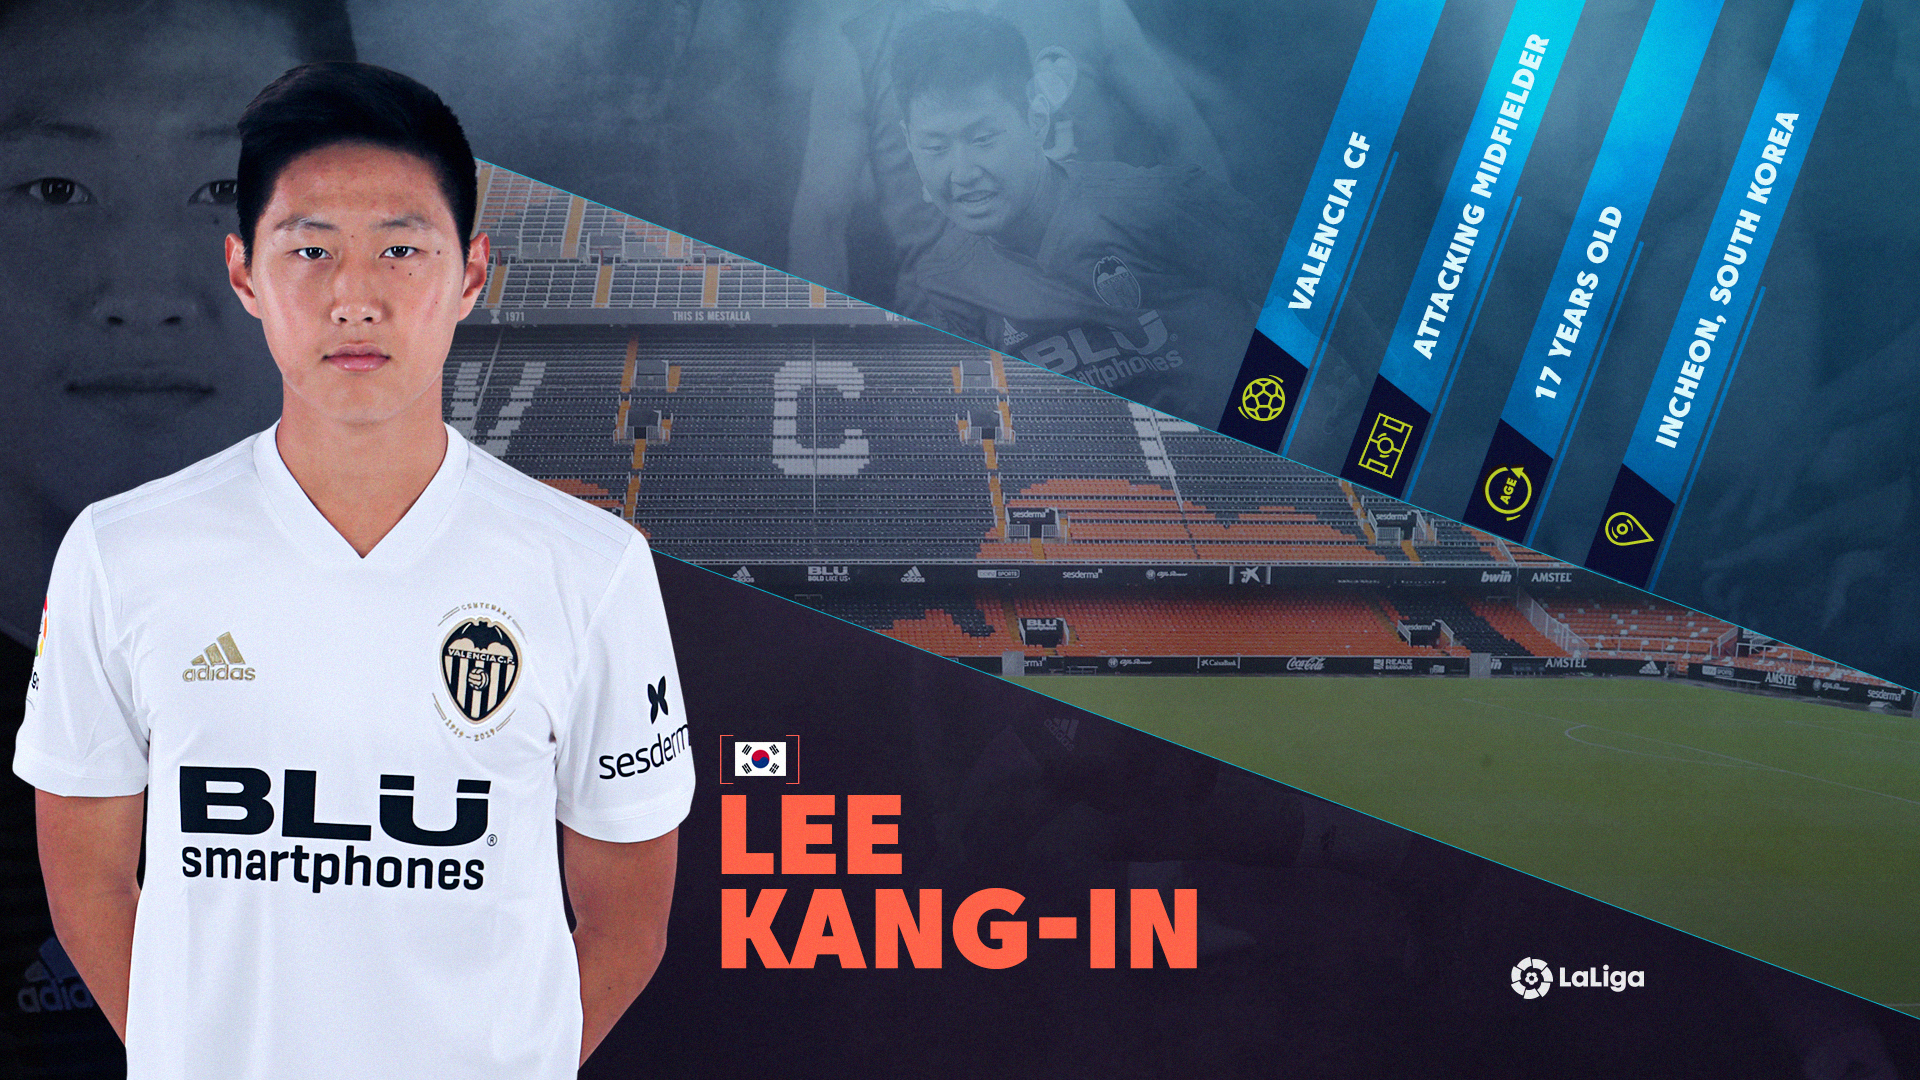 Lee Kang-in Infographic from La Liga